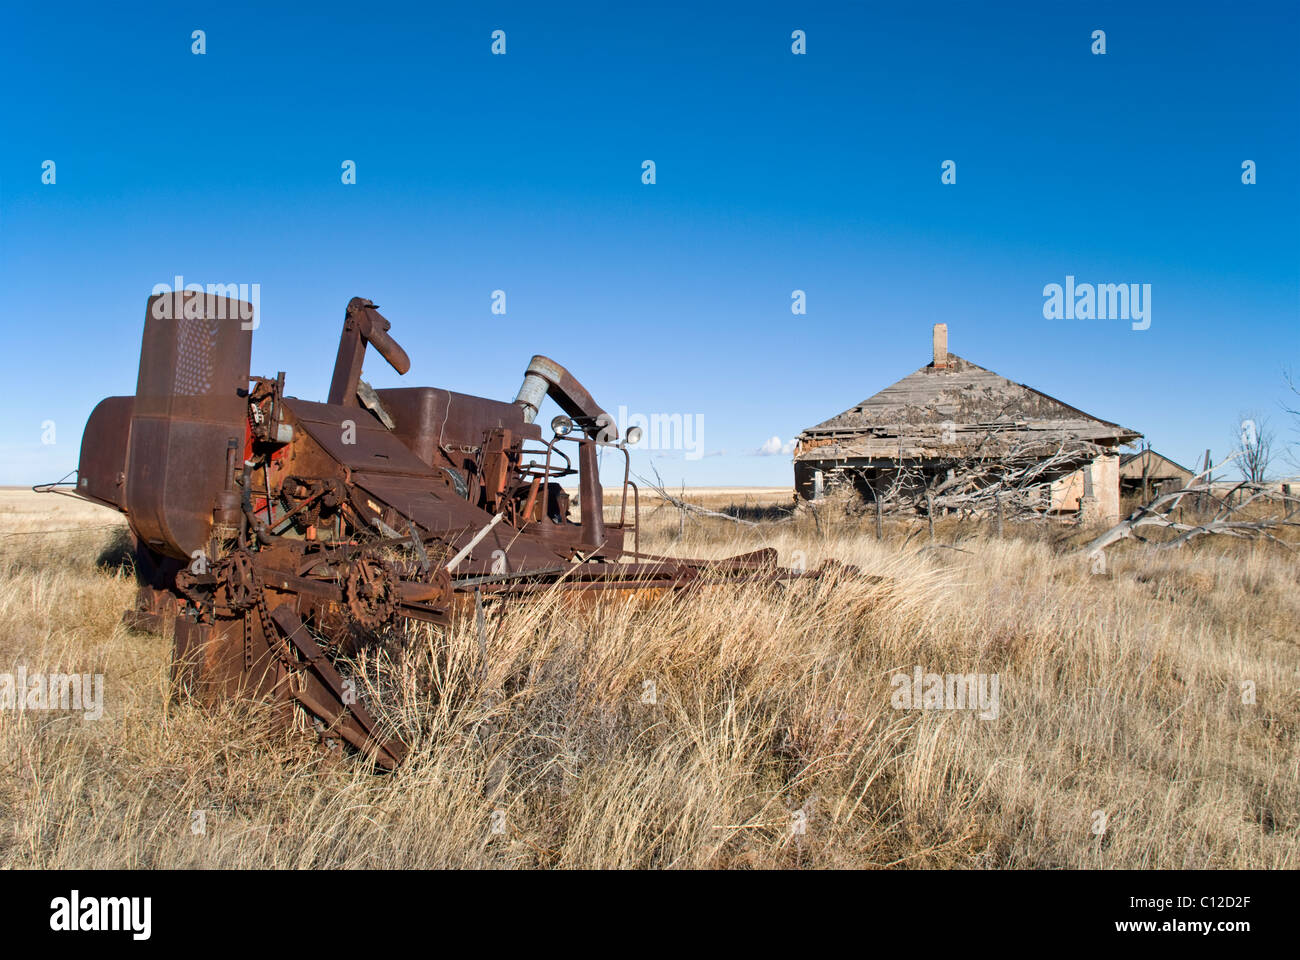 Rusty old farm machinery sits in front of an abandoned house in Quay County, New Mexico. - Stock Image